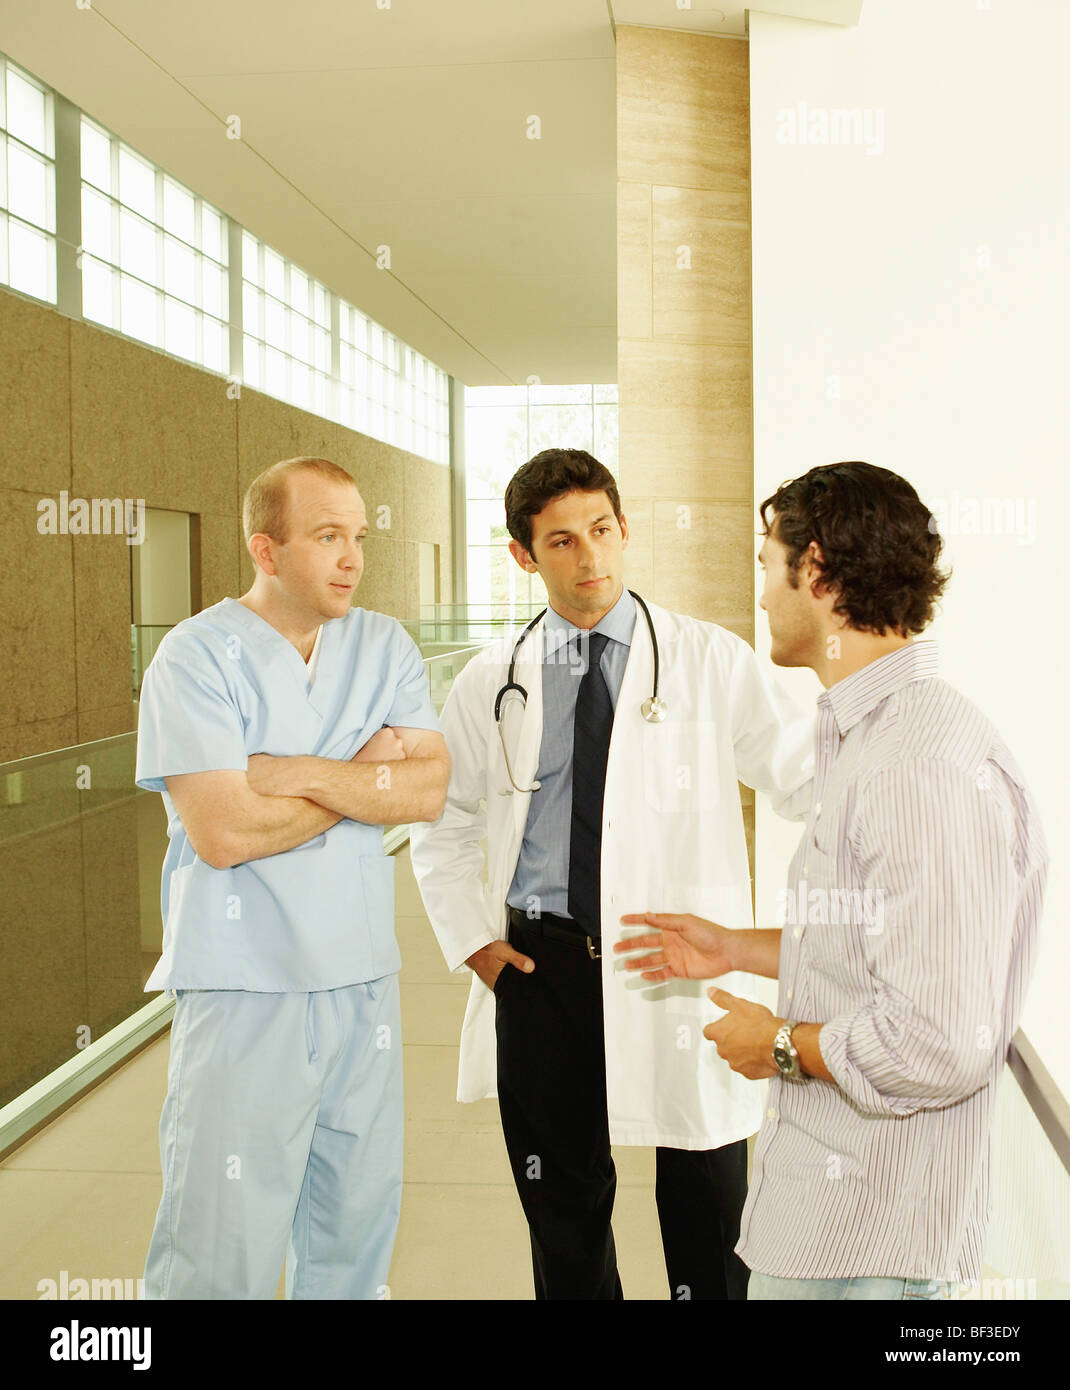 Doctor with patient in hospital Stock Photo